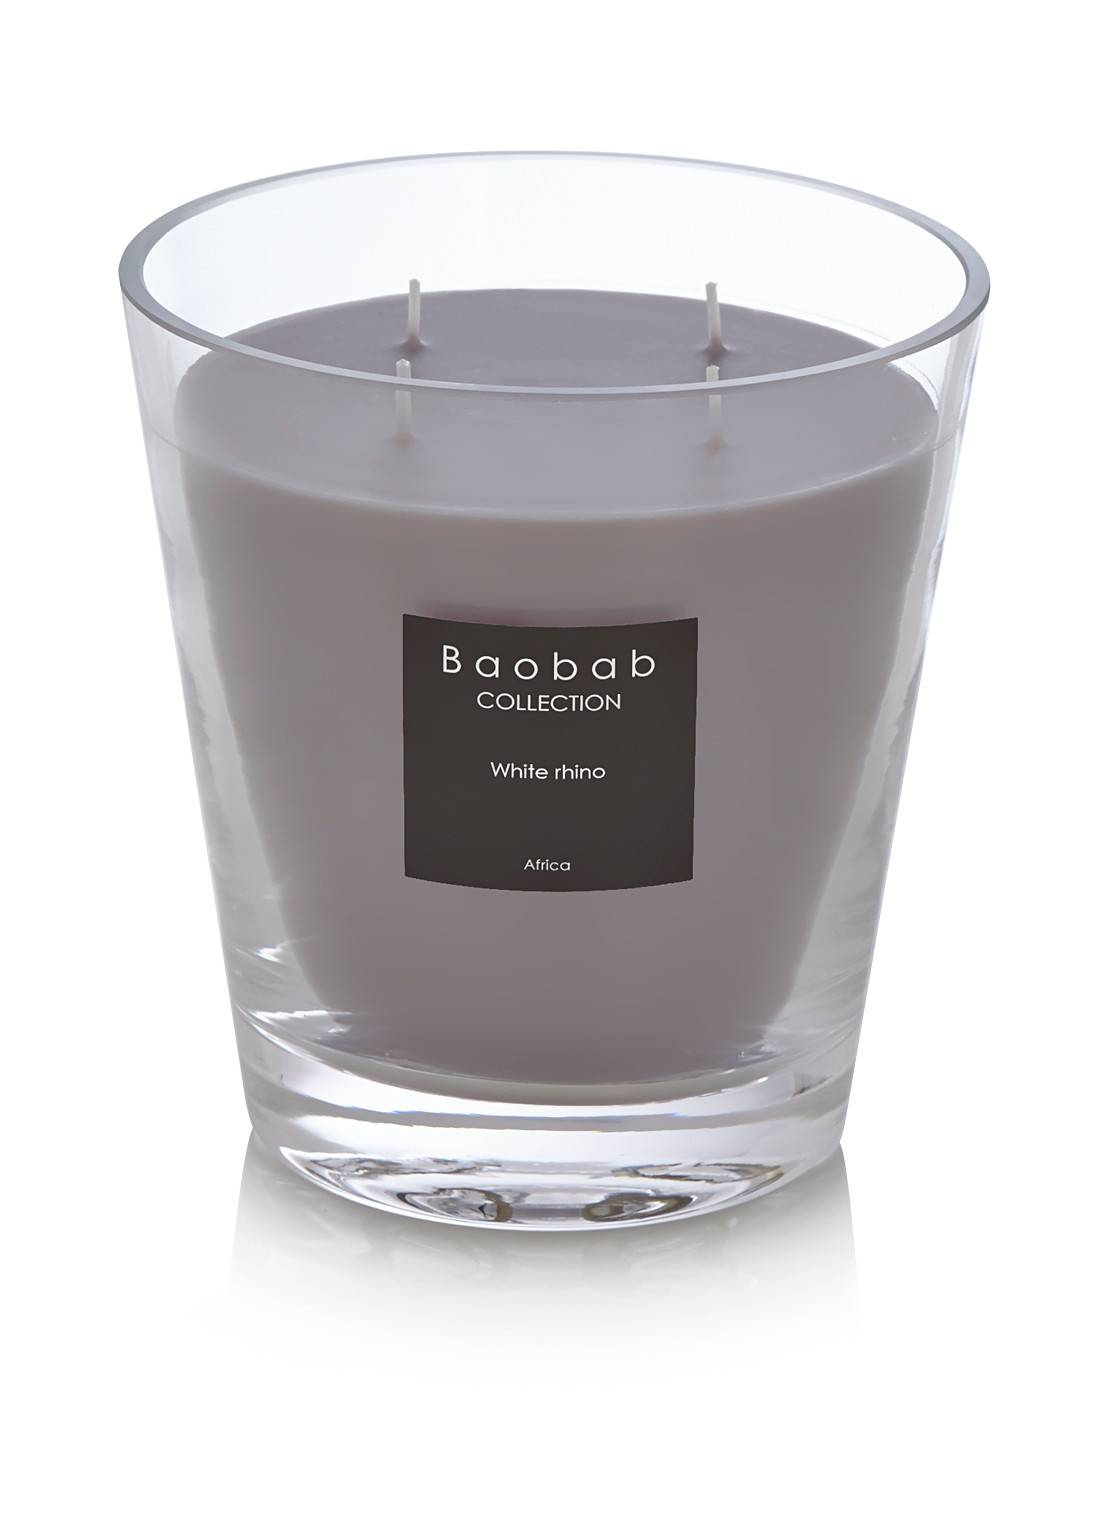 baobab collection Bougie parfumée White Rhino Africa - Gris clair